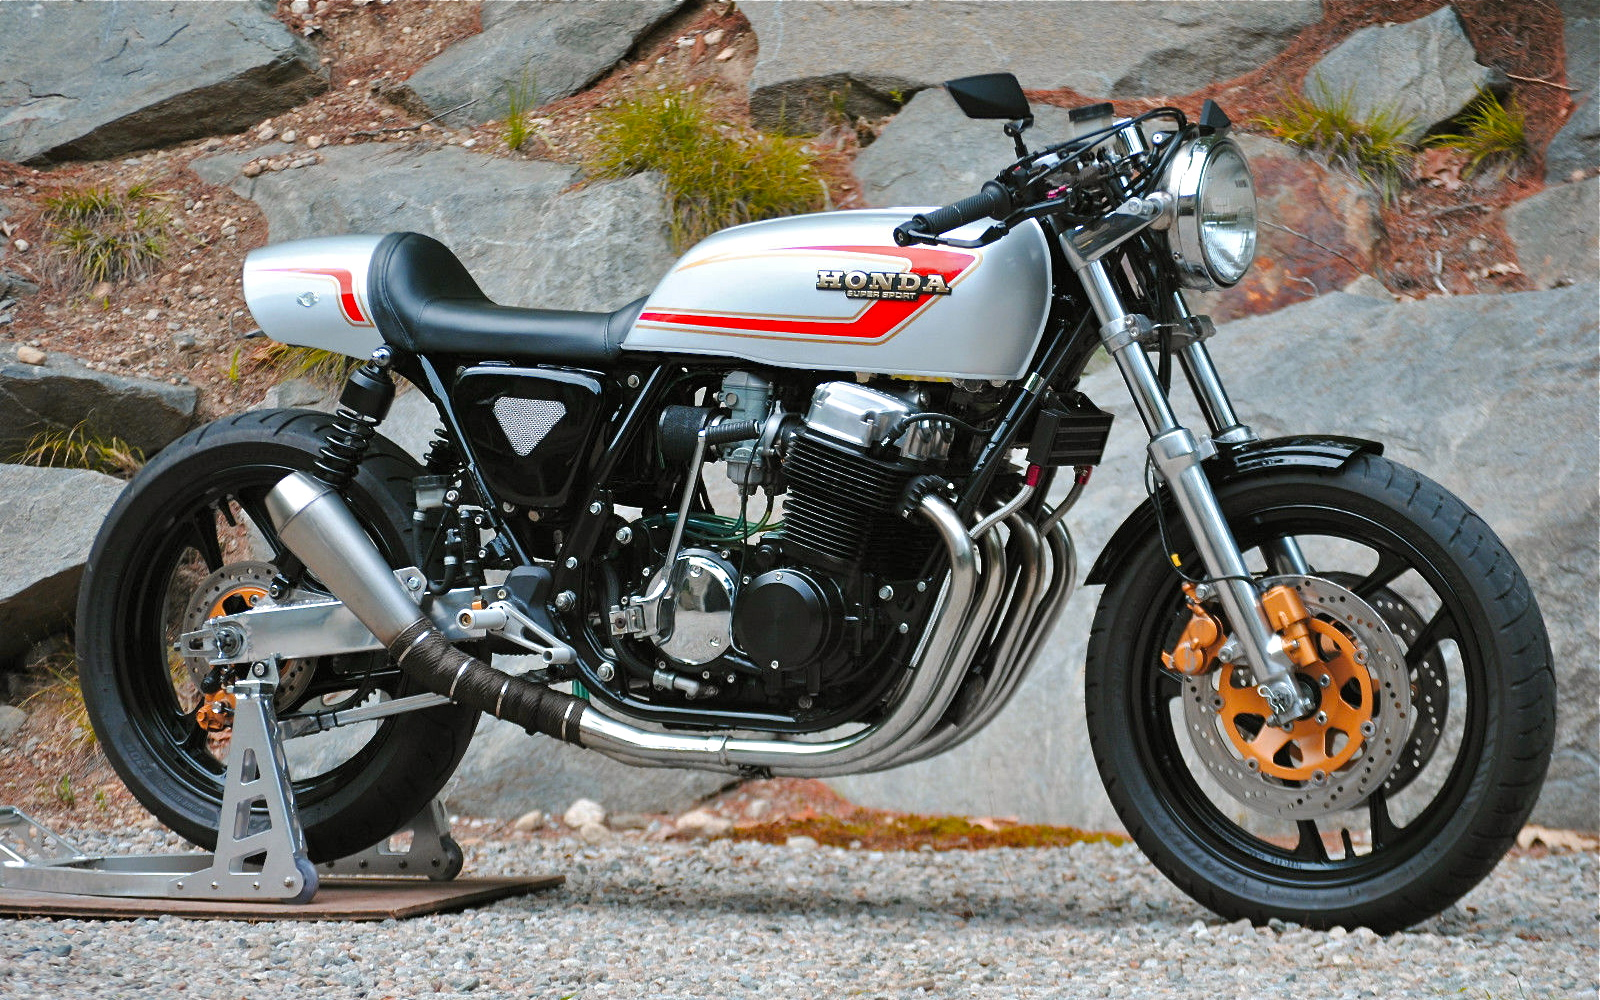 1978 CB750F Cafe Racer 836cc By Tom Laws